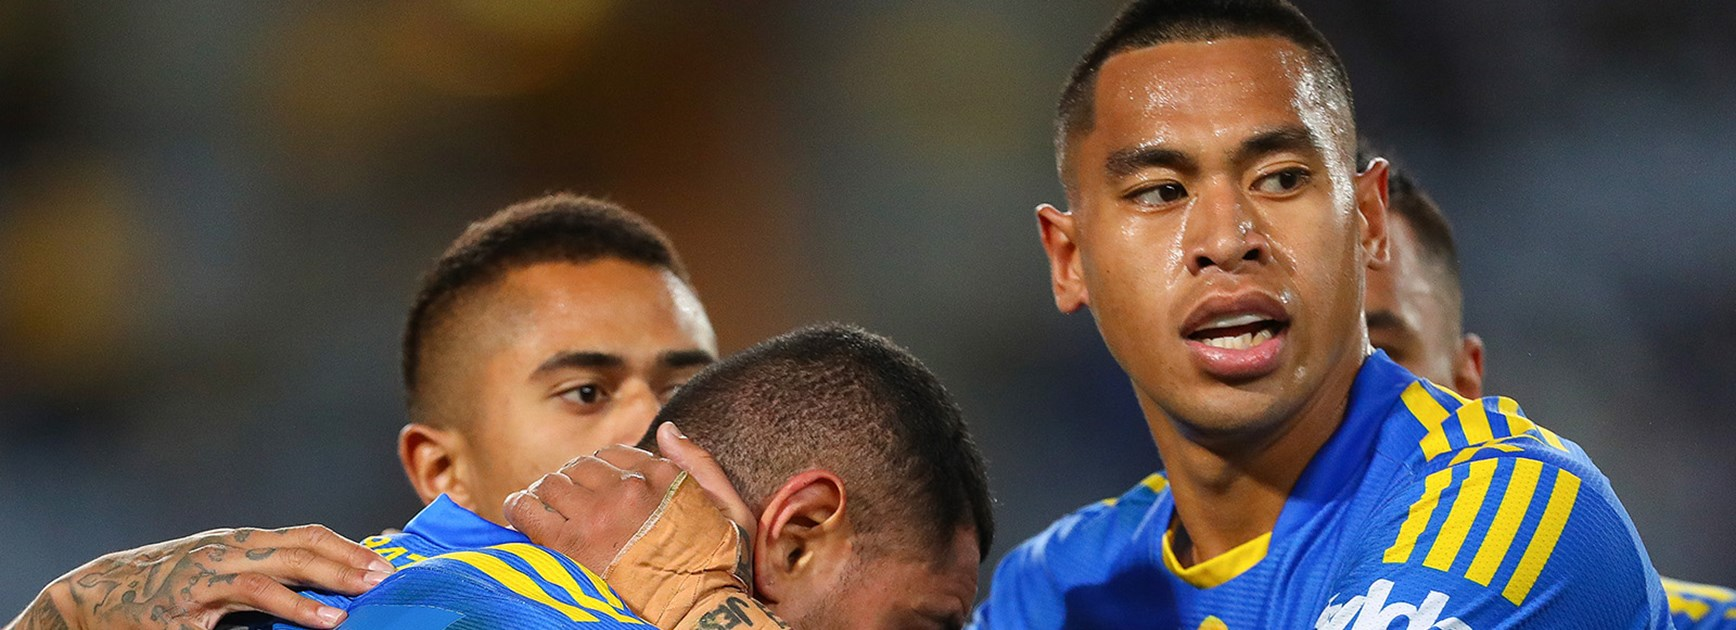 The Eels celebrate a try against the Wests Tigers at ANZ Stadium.